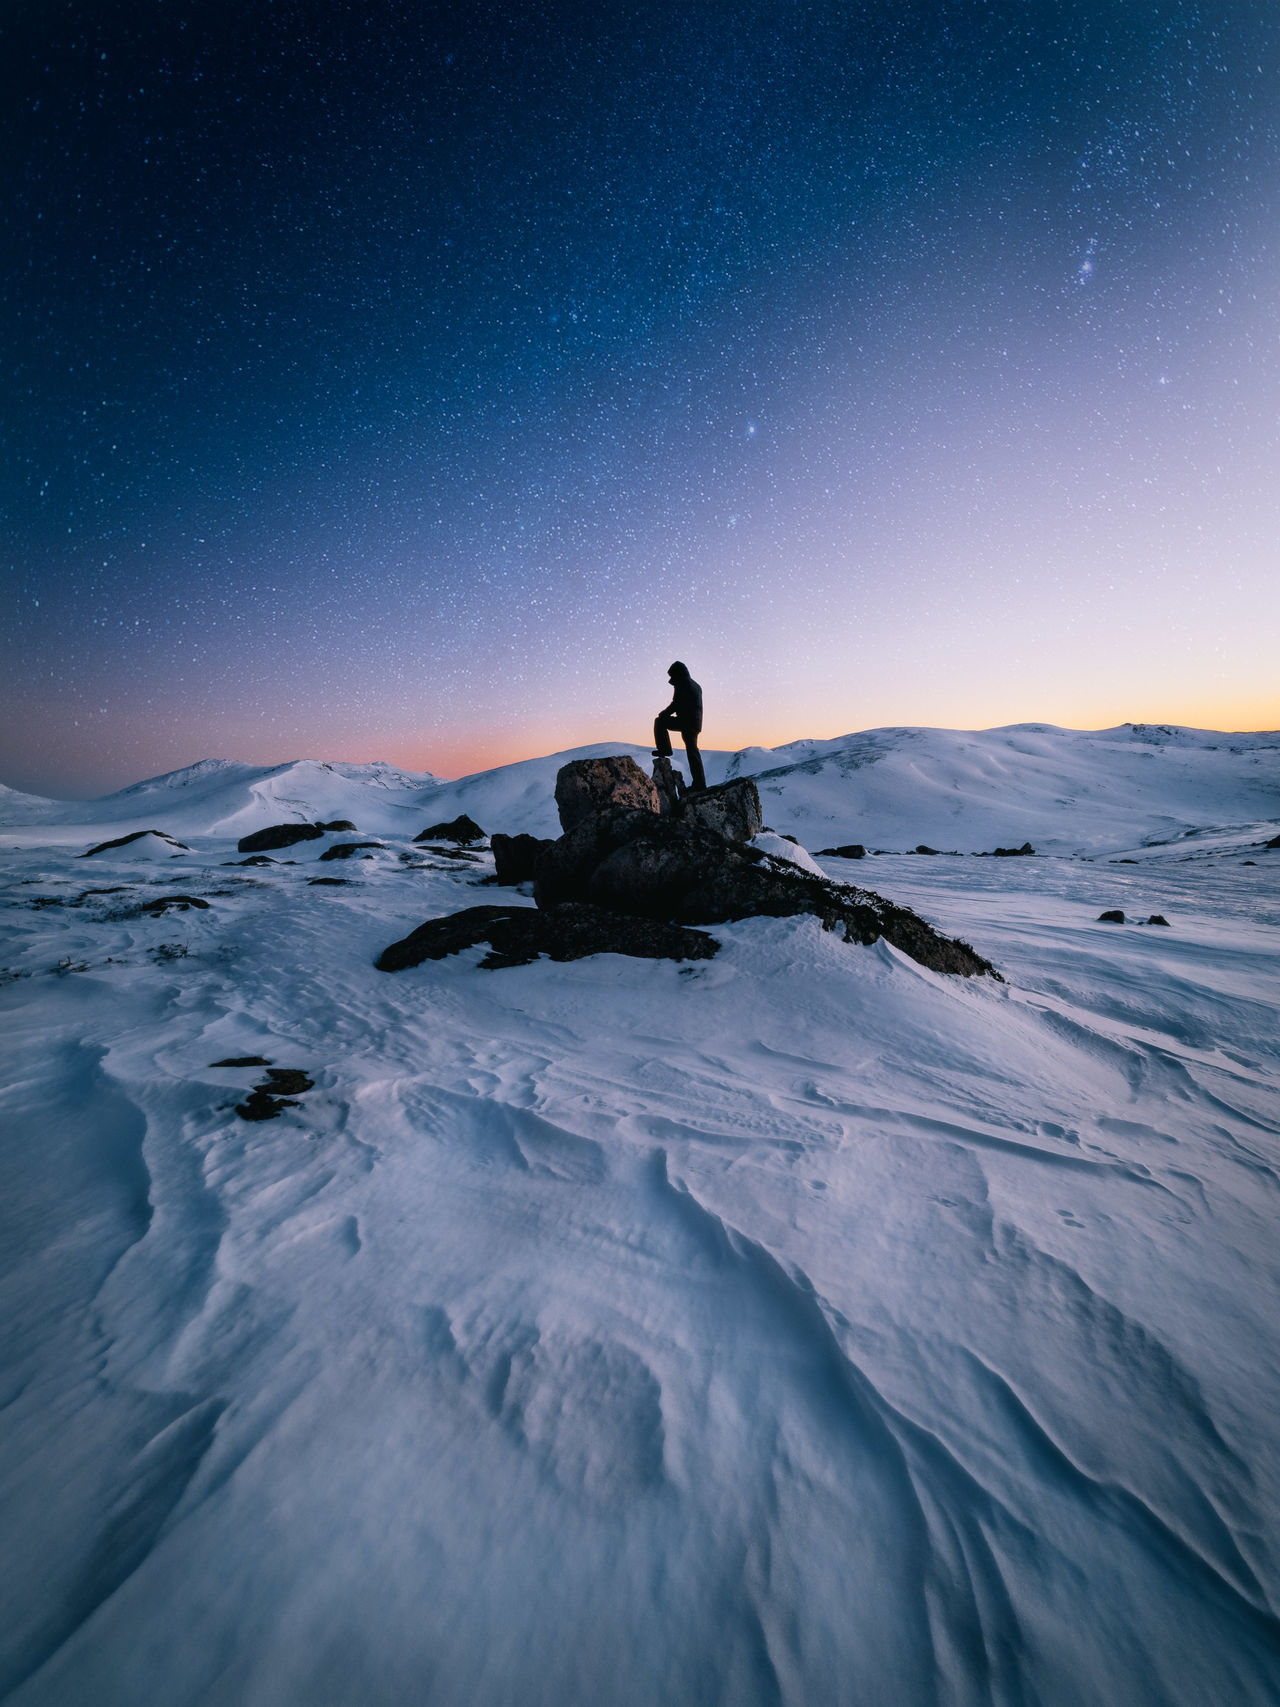 Silhouette Man Standing On Rock At Snow Covered Mountains Against Sky